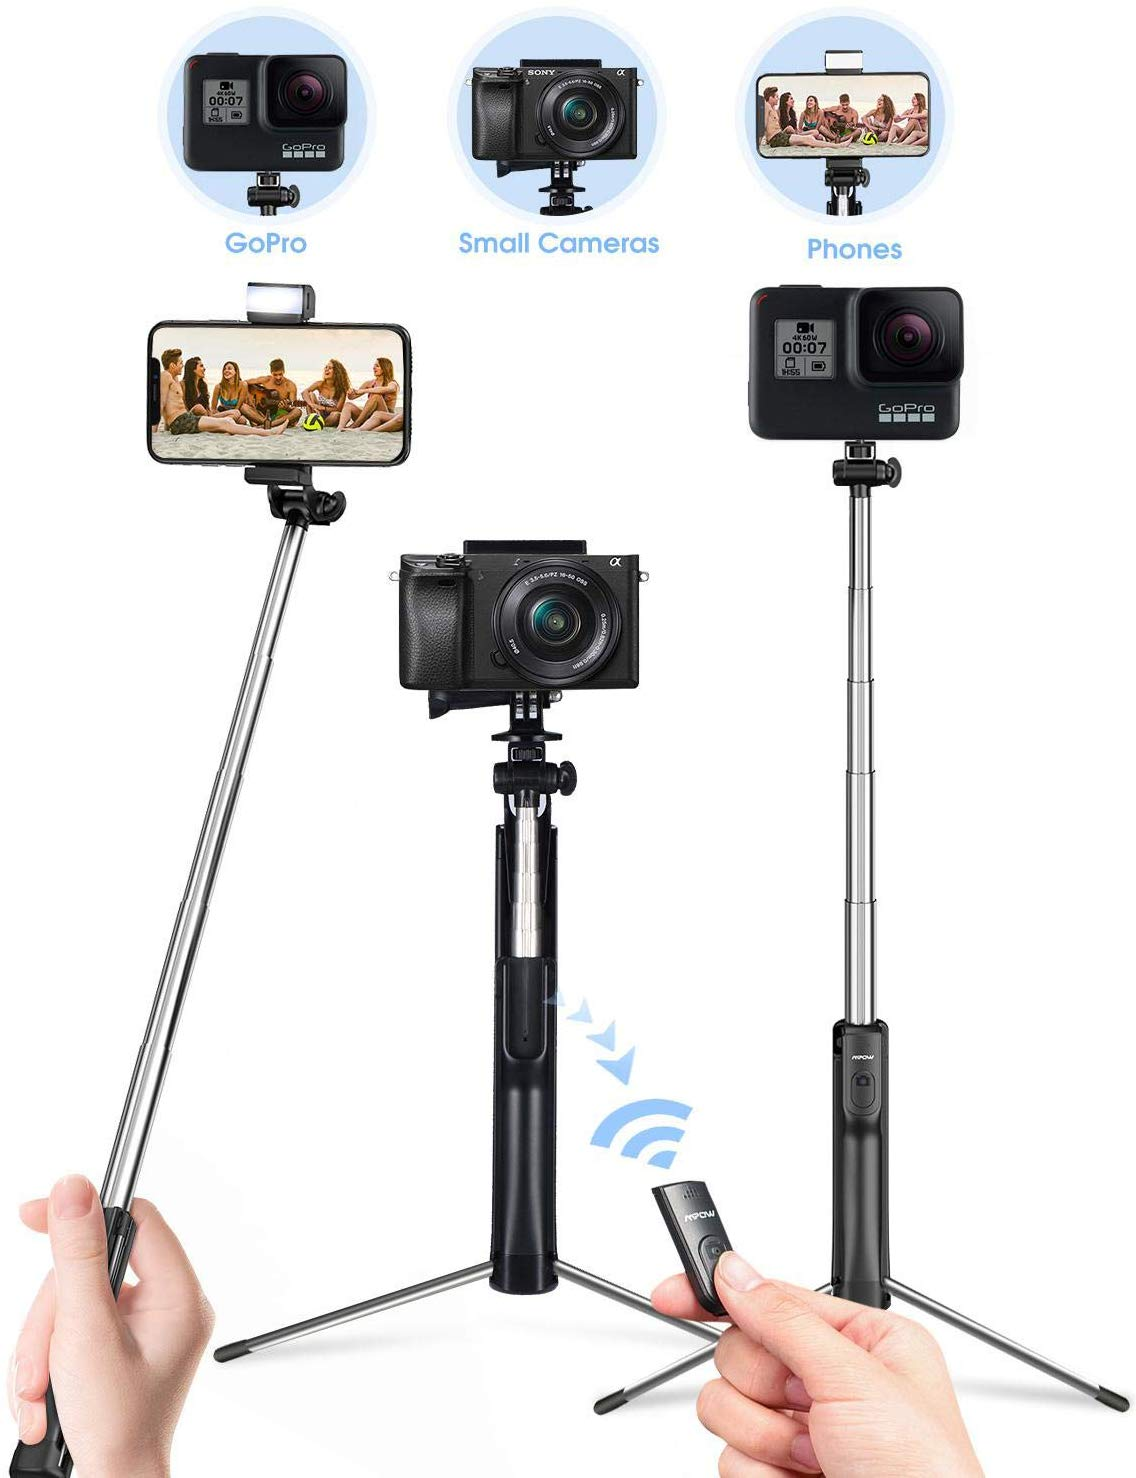 http://Take%20selfies%20and%20videos%20with%20stability%20with%20this%20product